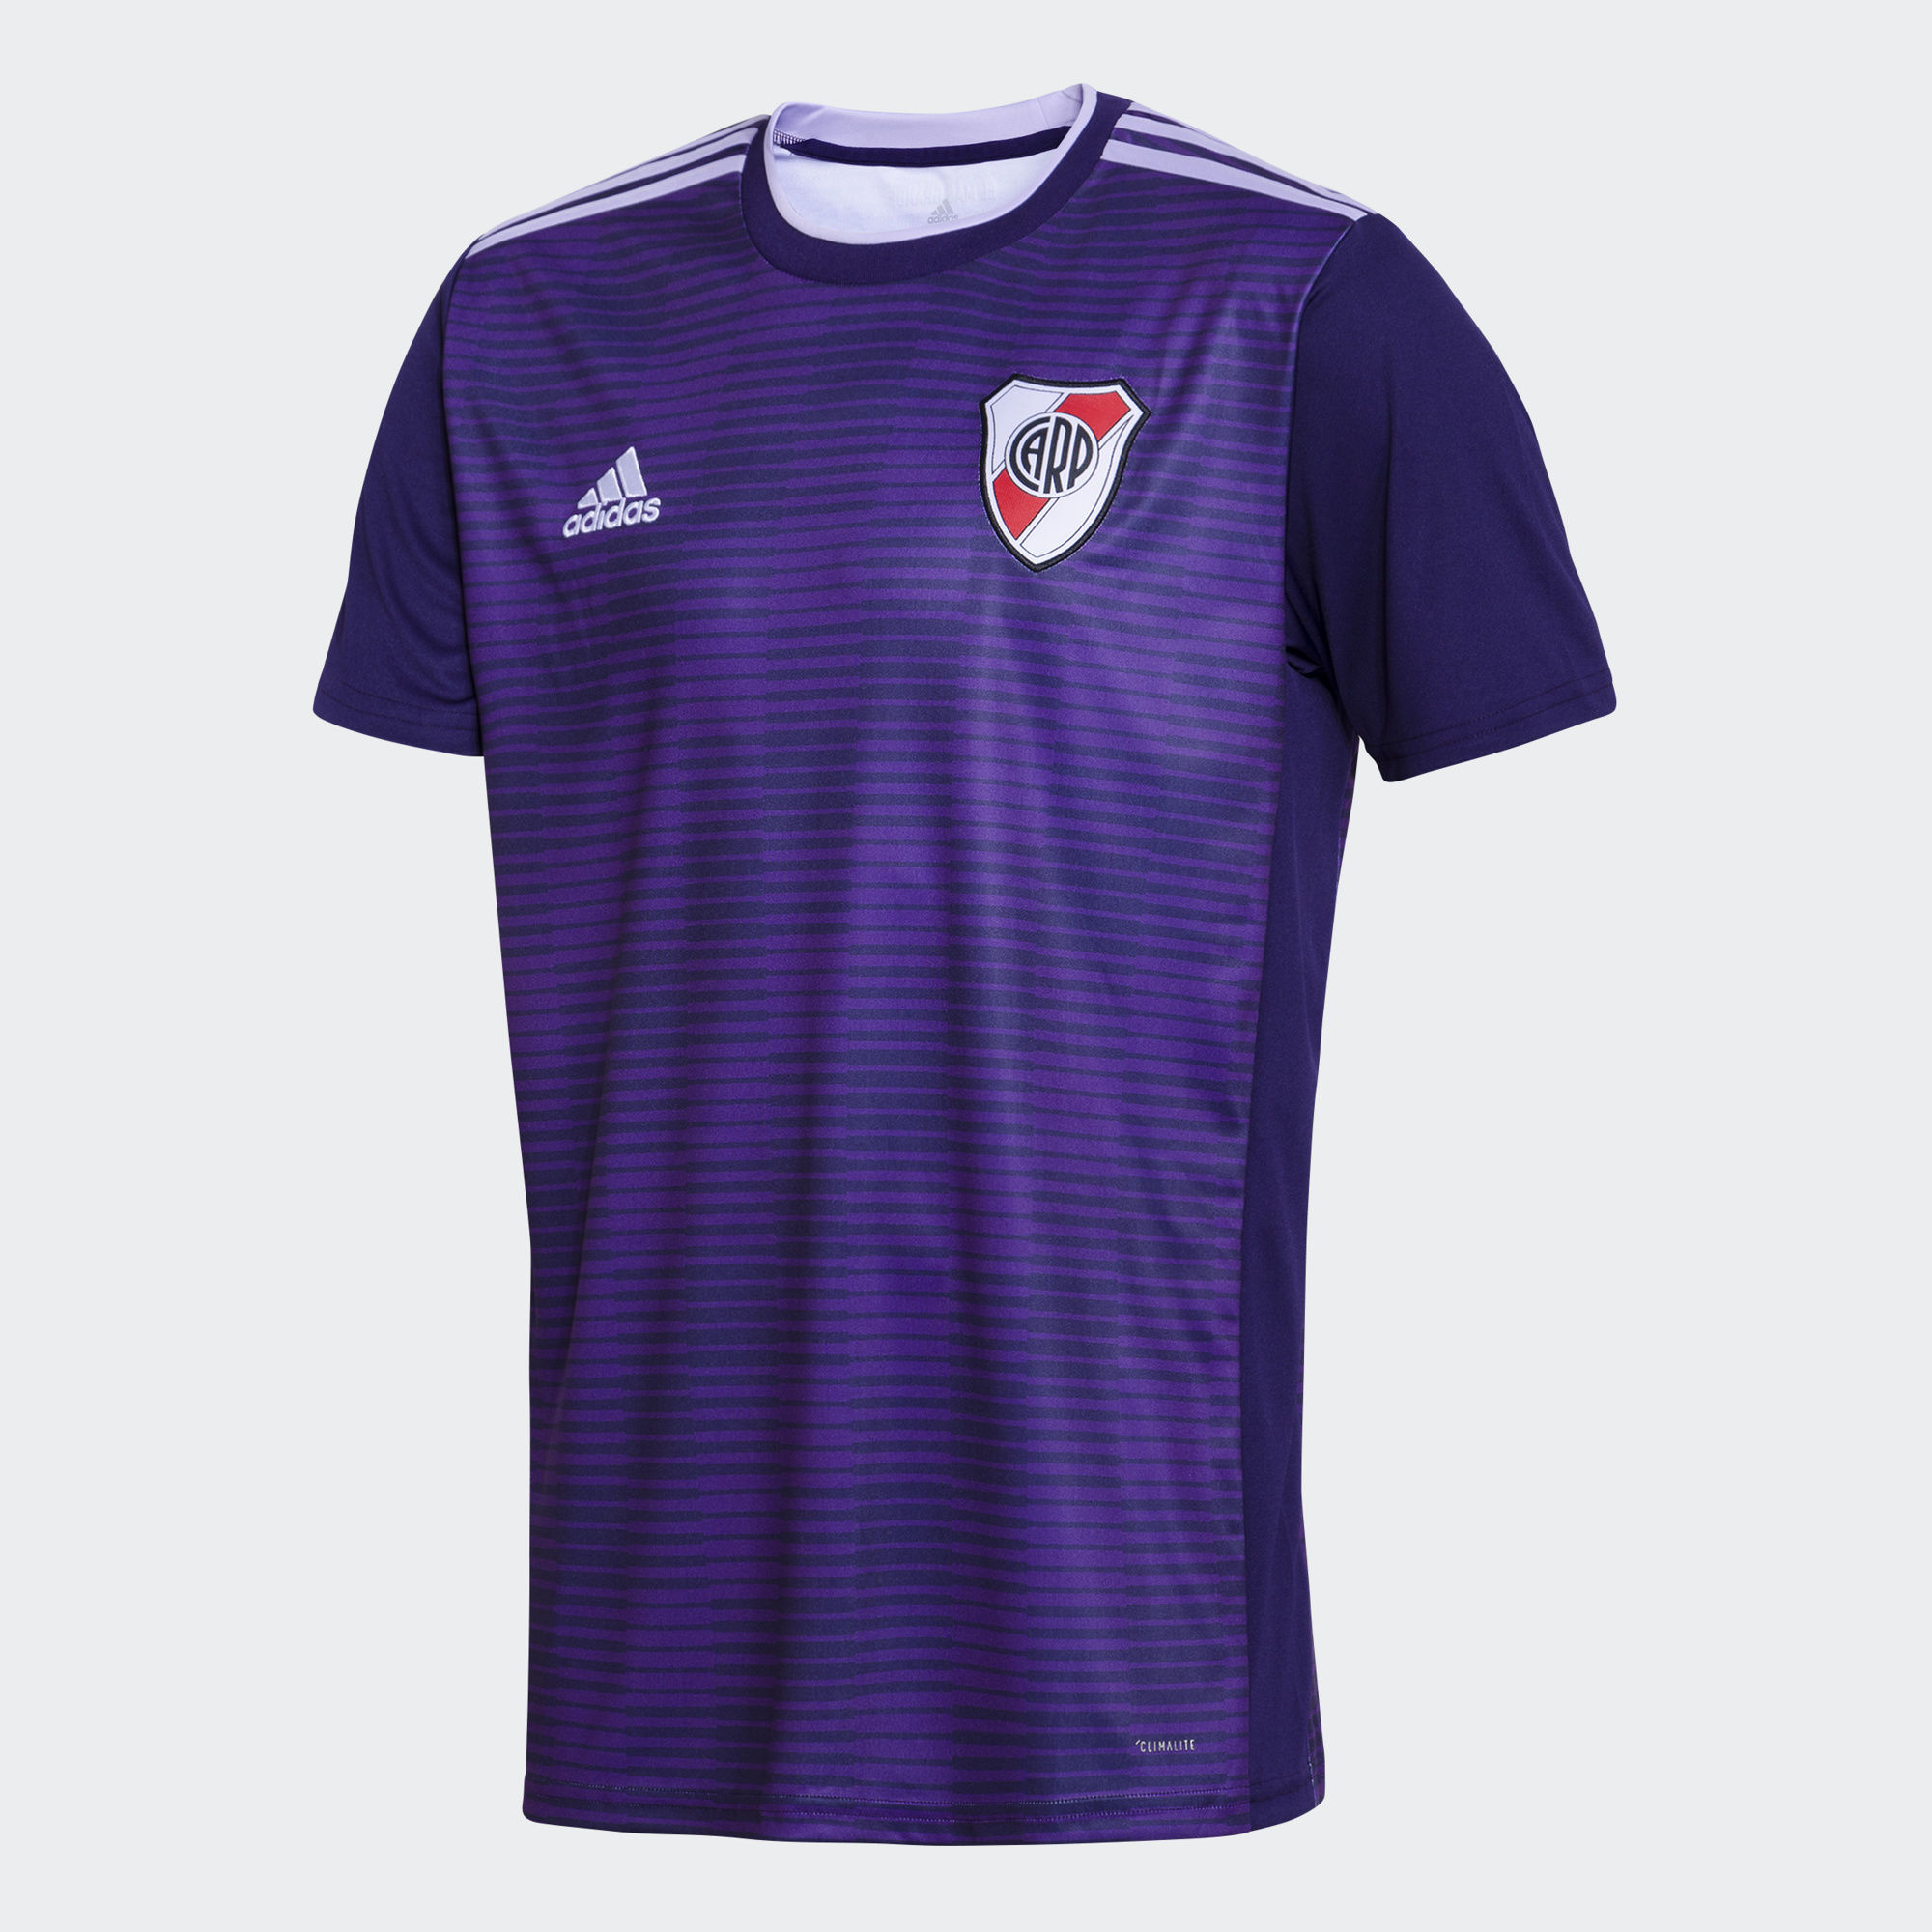 c48bdd099 ... River Plate 2018-19 Adidas Home Kit · Click to enlarge image  river plate 18 19 adidas away kit a.jpg ...